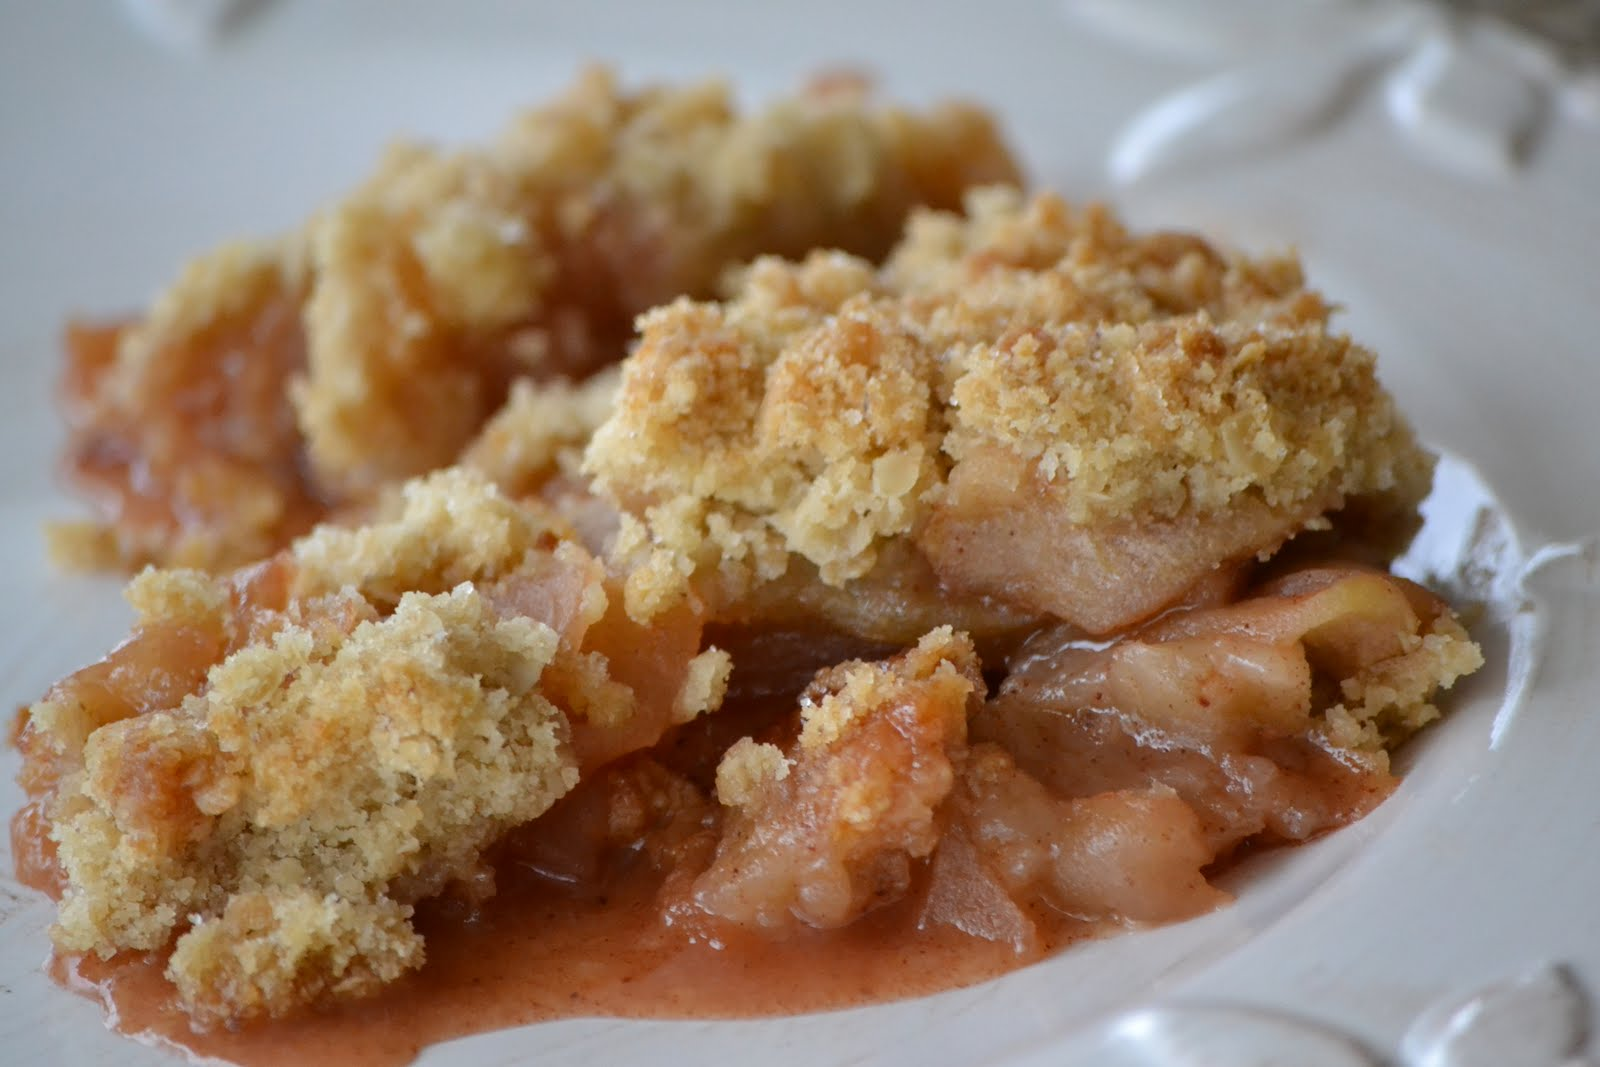 apple crisp is something i crave whenever i see a few lonely apples ...